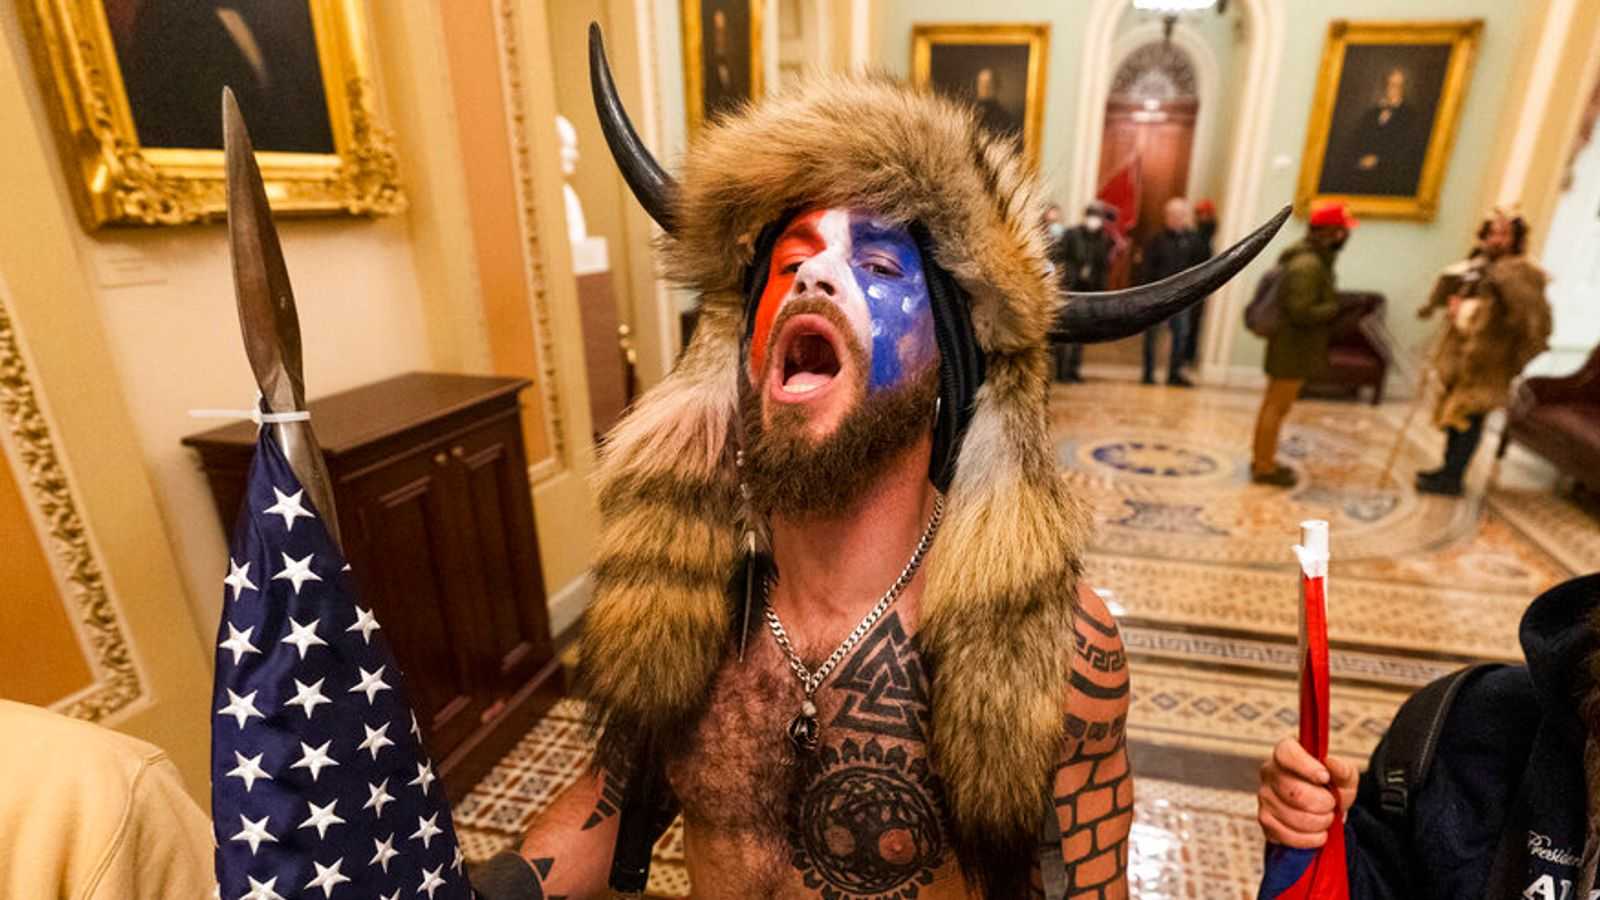 Us Capitol Q Anon Confederate Flag Man And Baked Alaska Here Are The People Who Stormed The Building World News Sky News